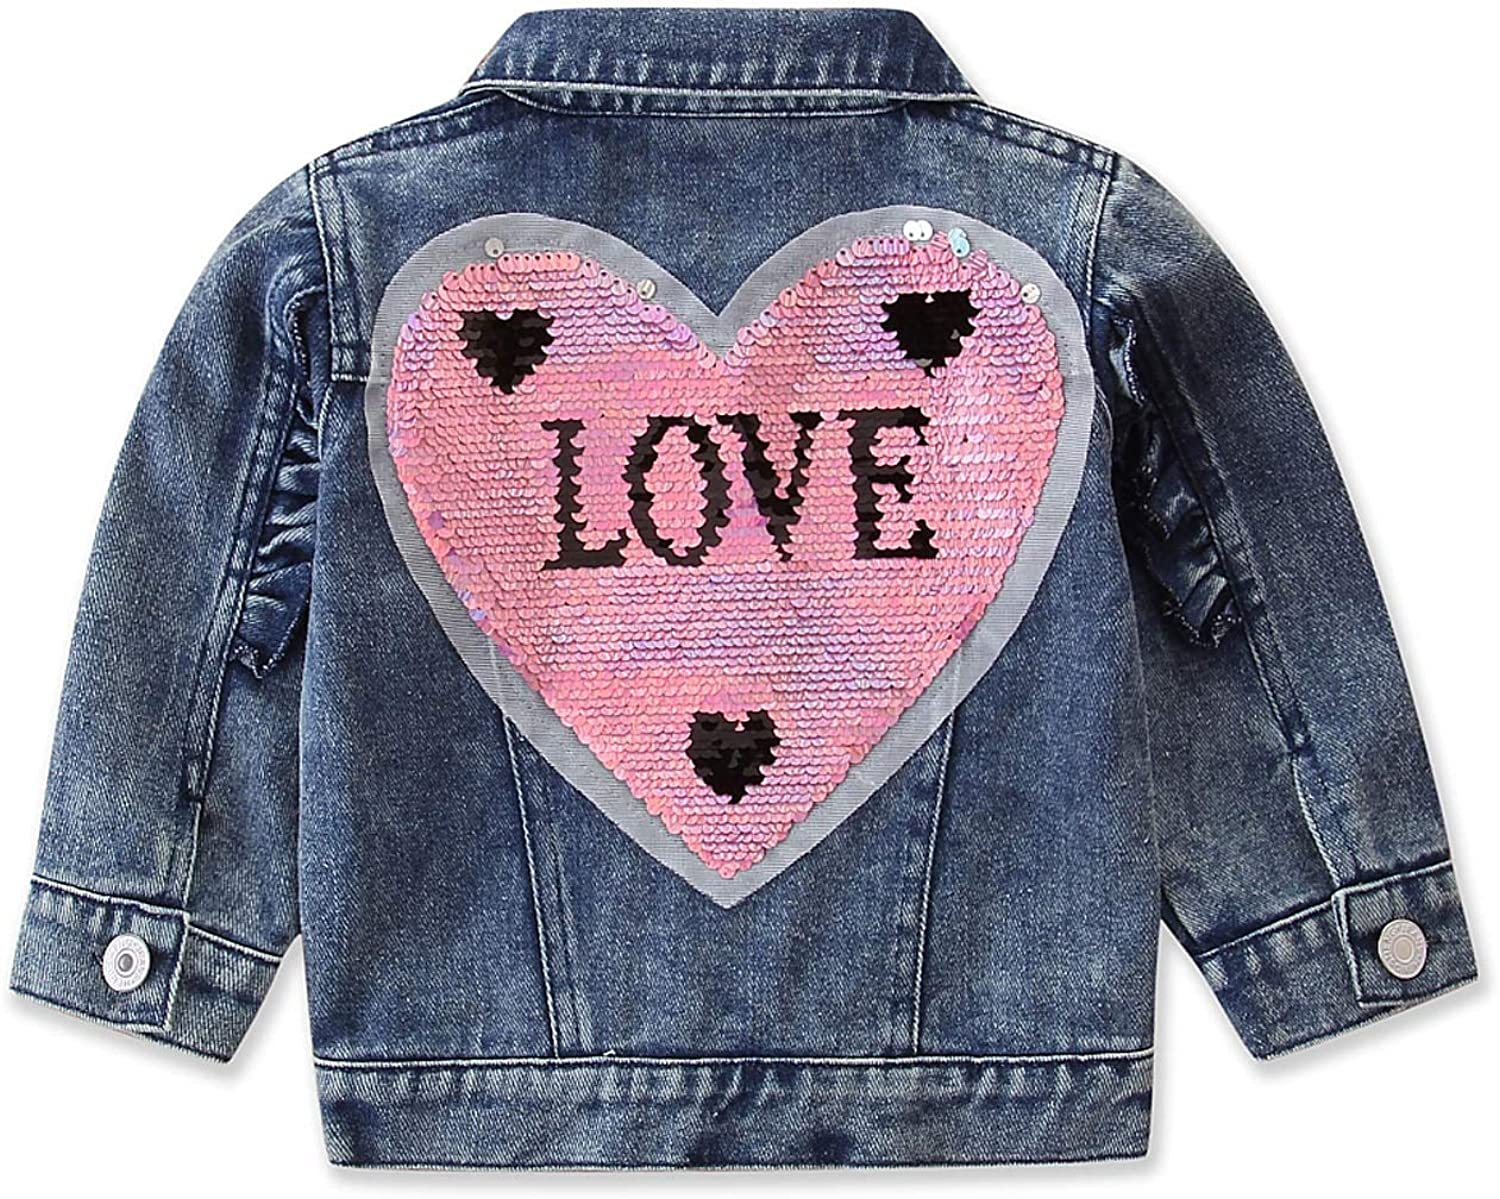 Toddler Baby Max 61% OFF Boys Girls Long Sleeve Denim A Coat Jacket Special price For Jean